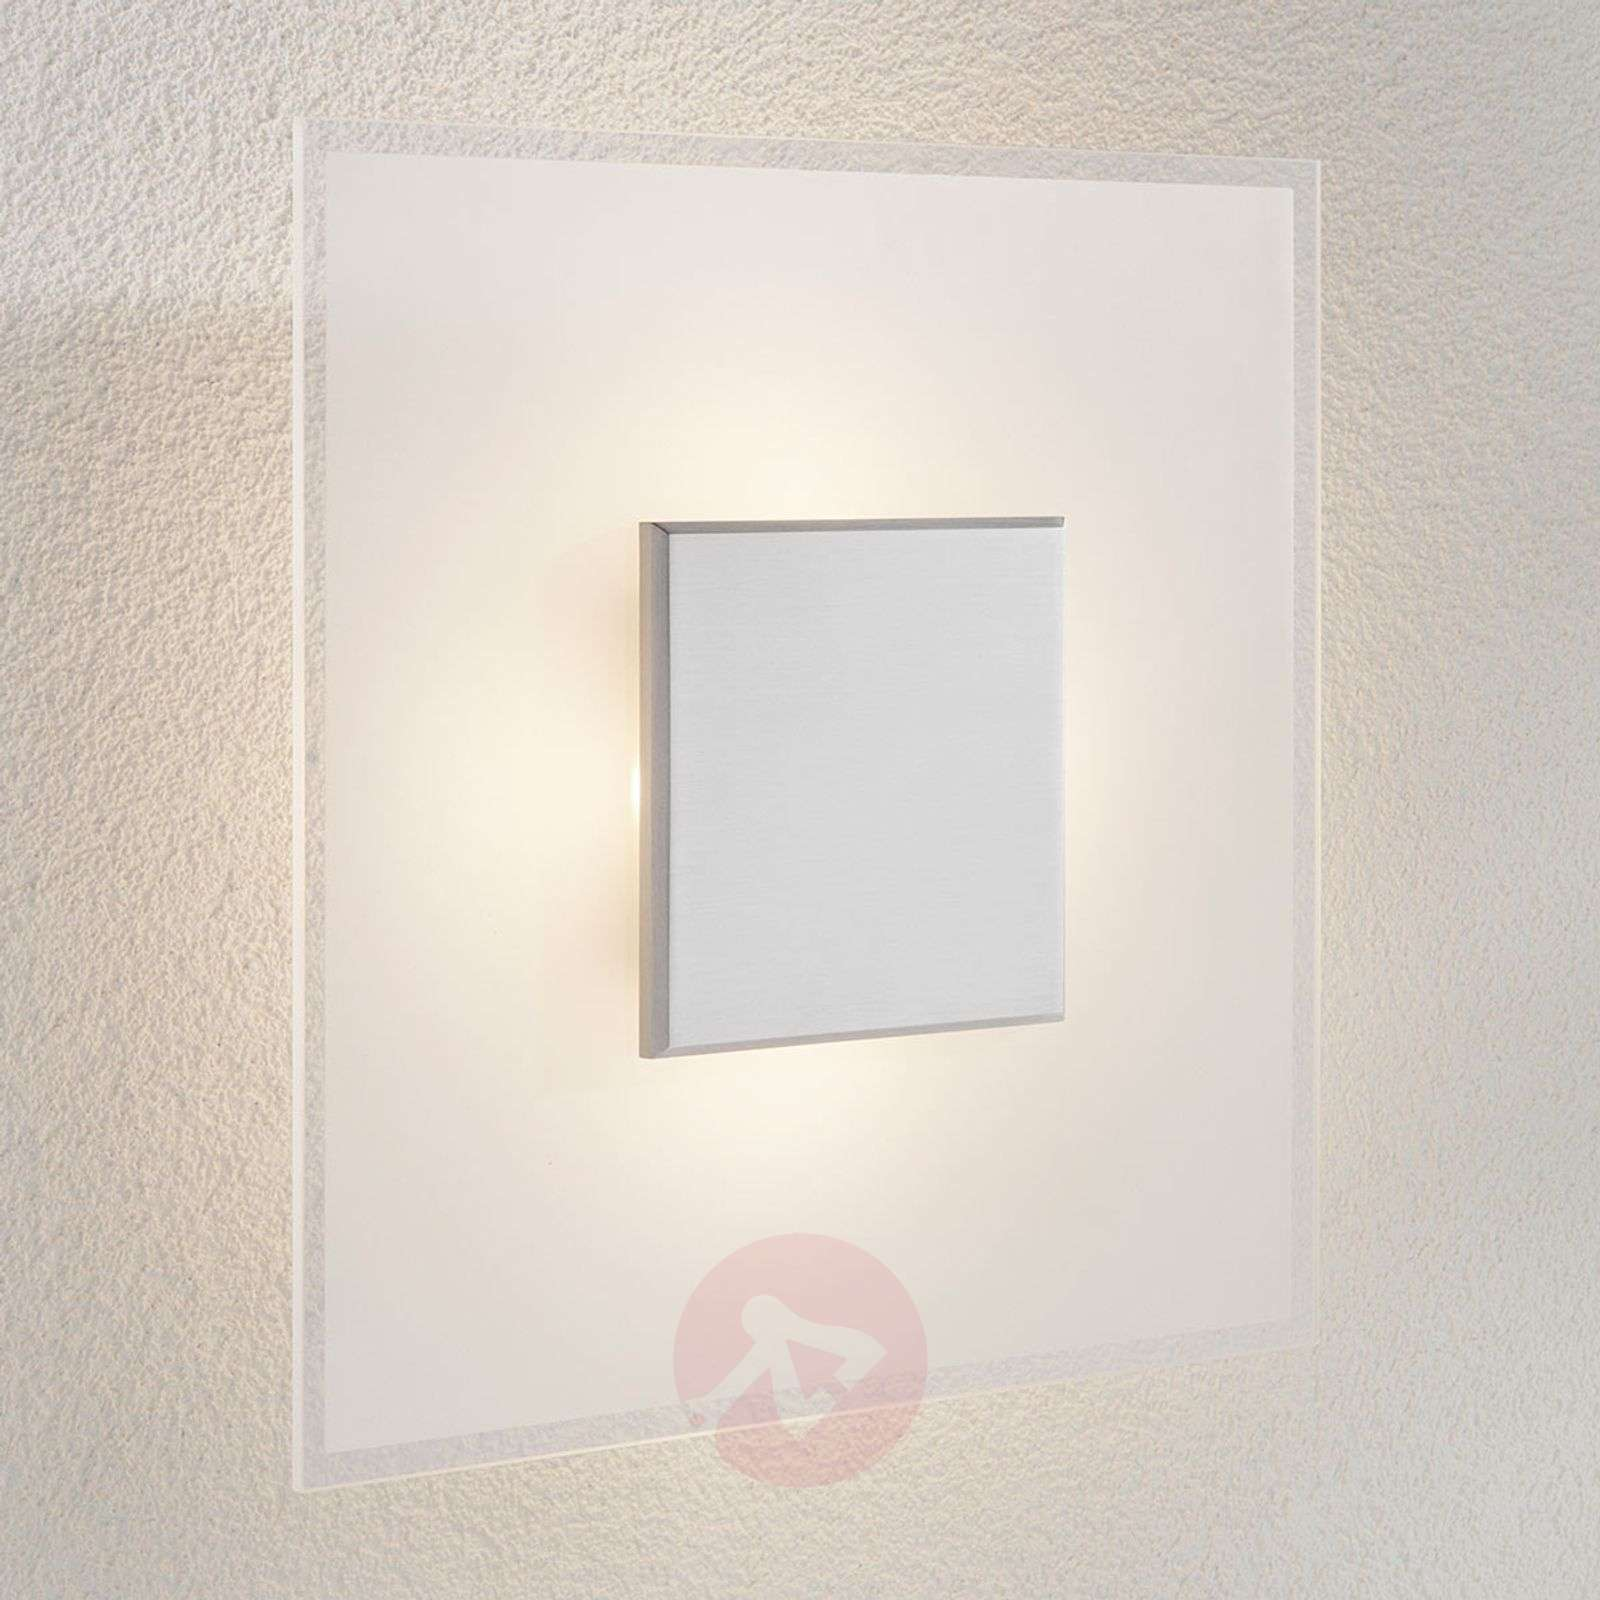 Designer ceiling lights buy online lights lole dimmable led ceiling lamp made of glass aloadofball Choice Image